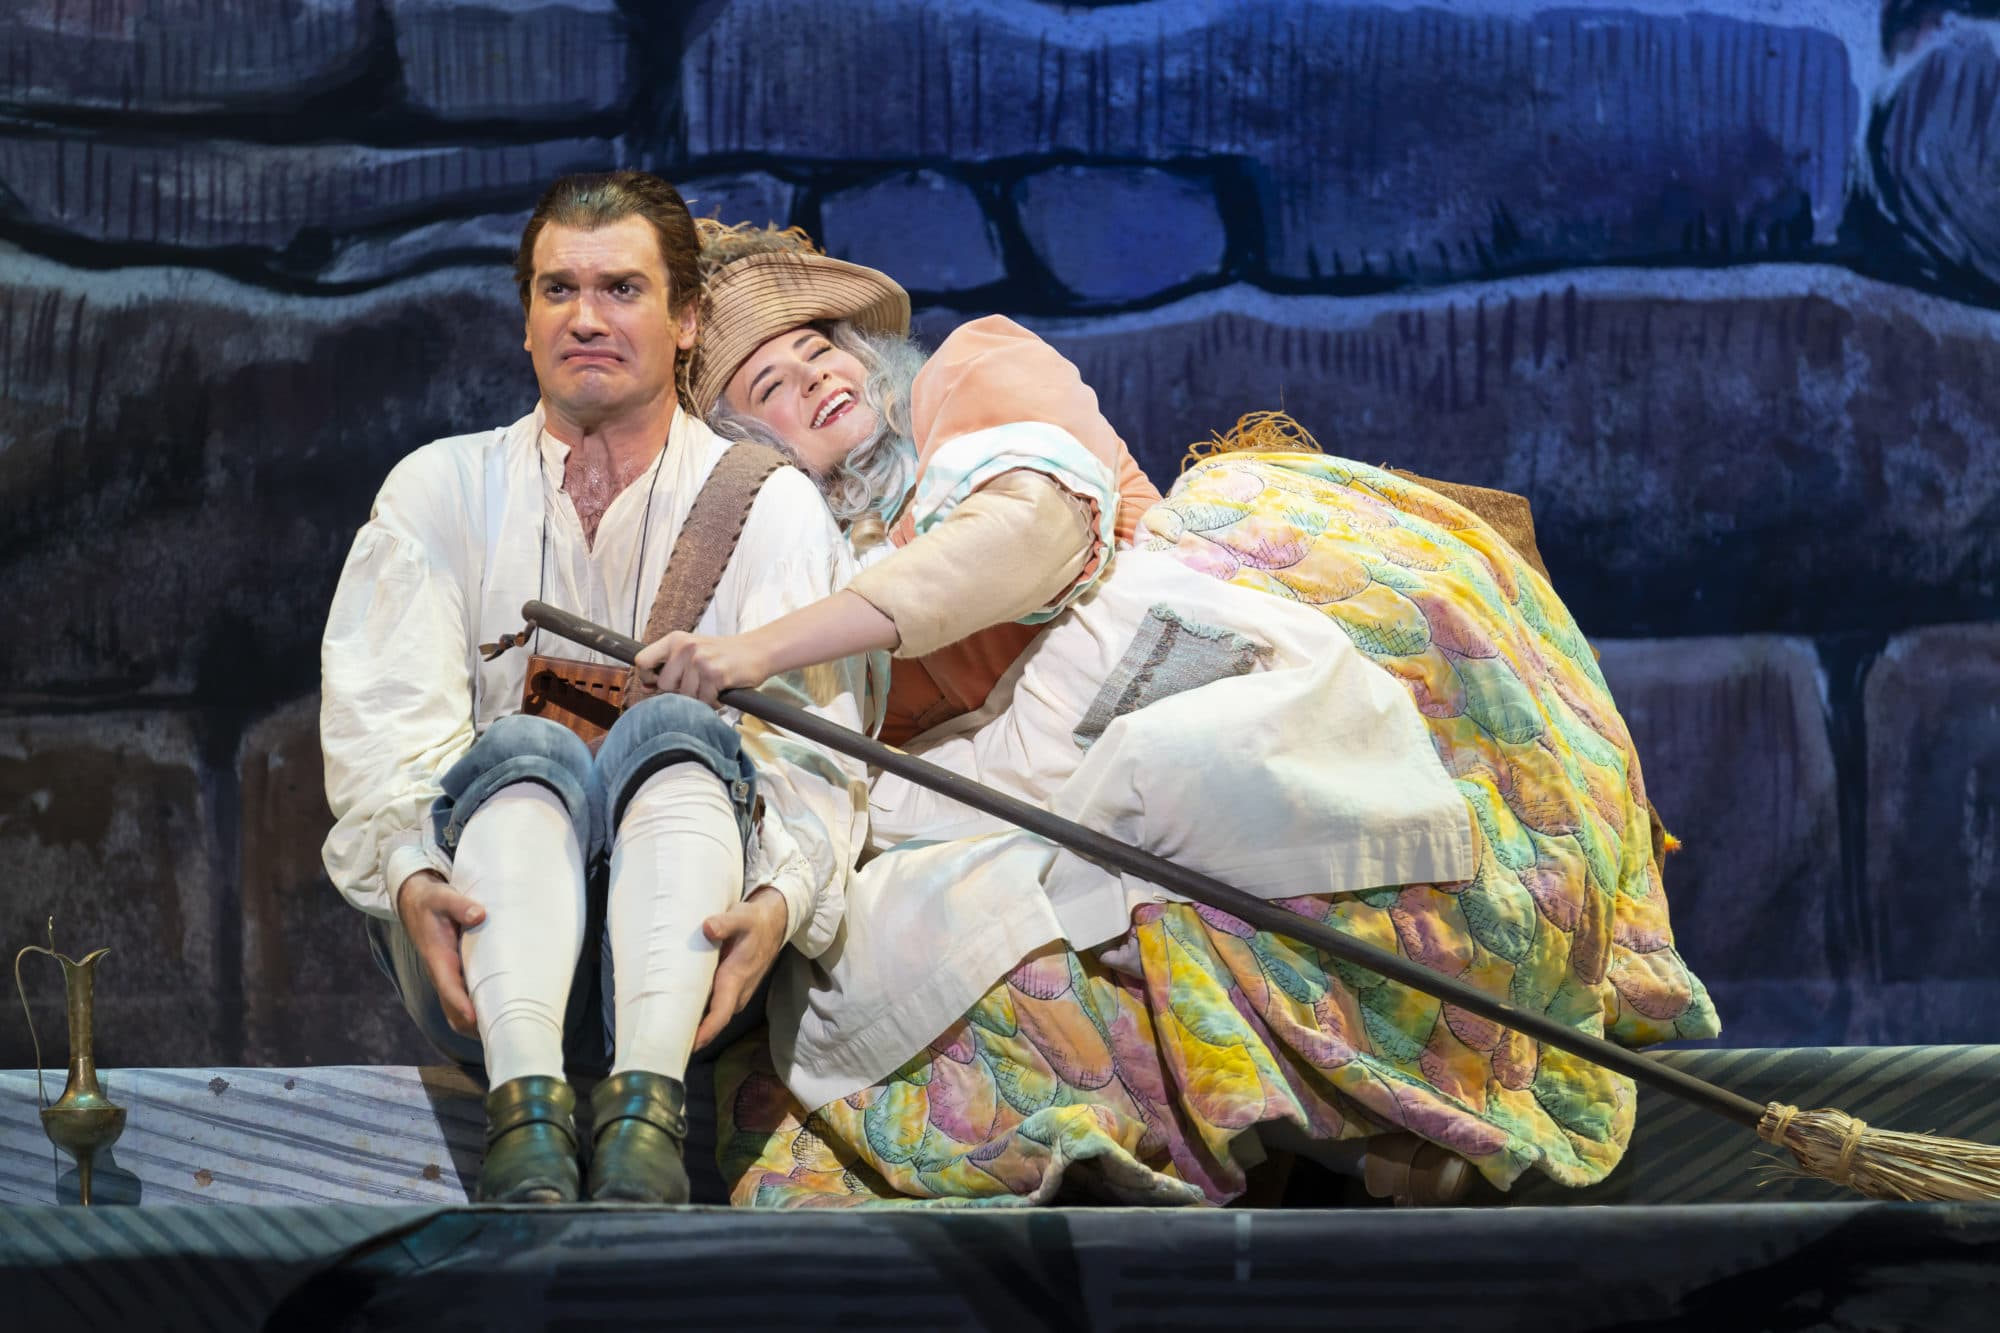 Michael Adams as Papageno and Alexandra Nowakowski as Papagena in Washington National Opera's 'The Magic Flute' at The Kennedy Center. Photo by Scott Suchman.